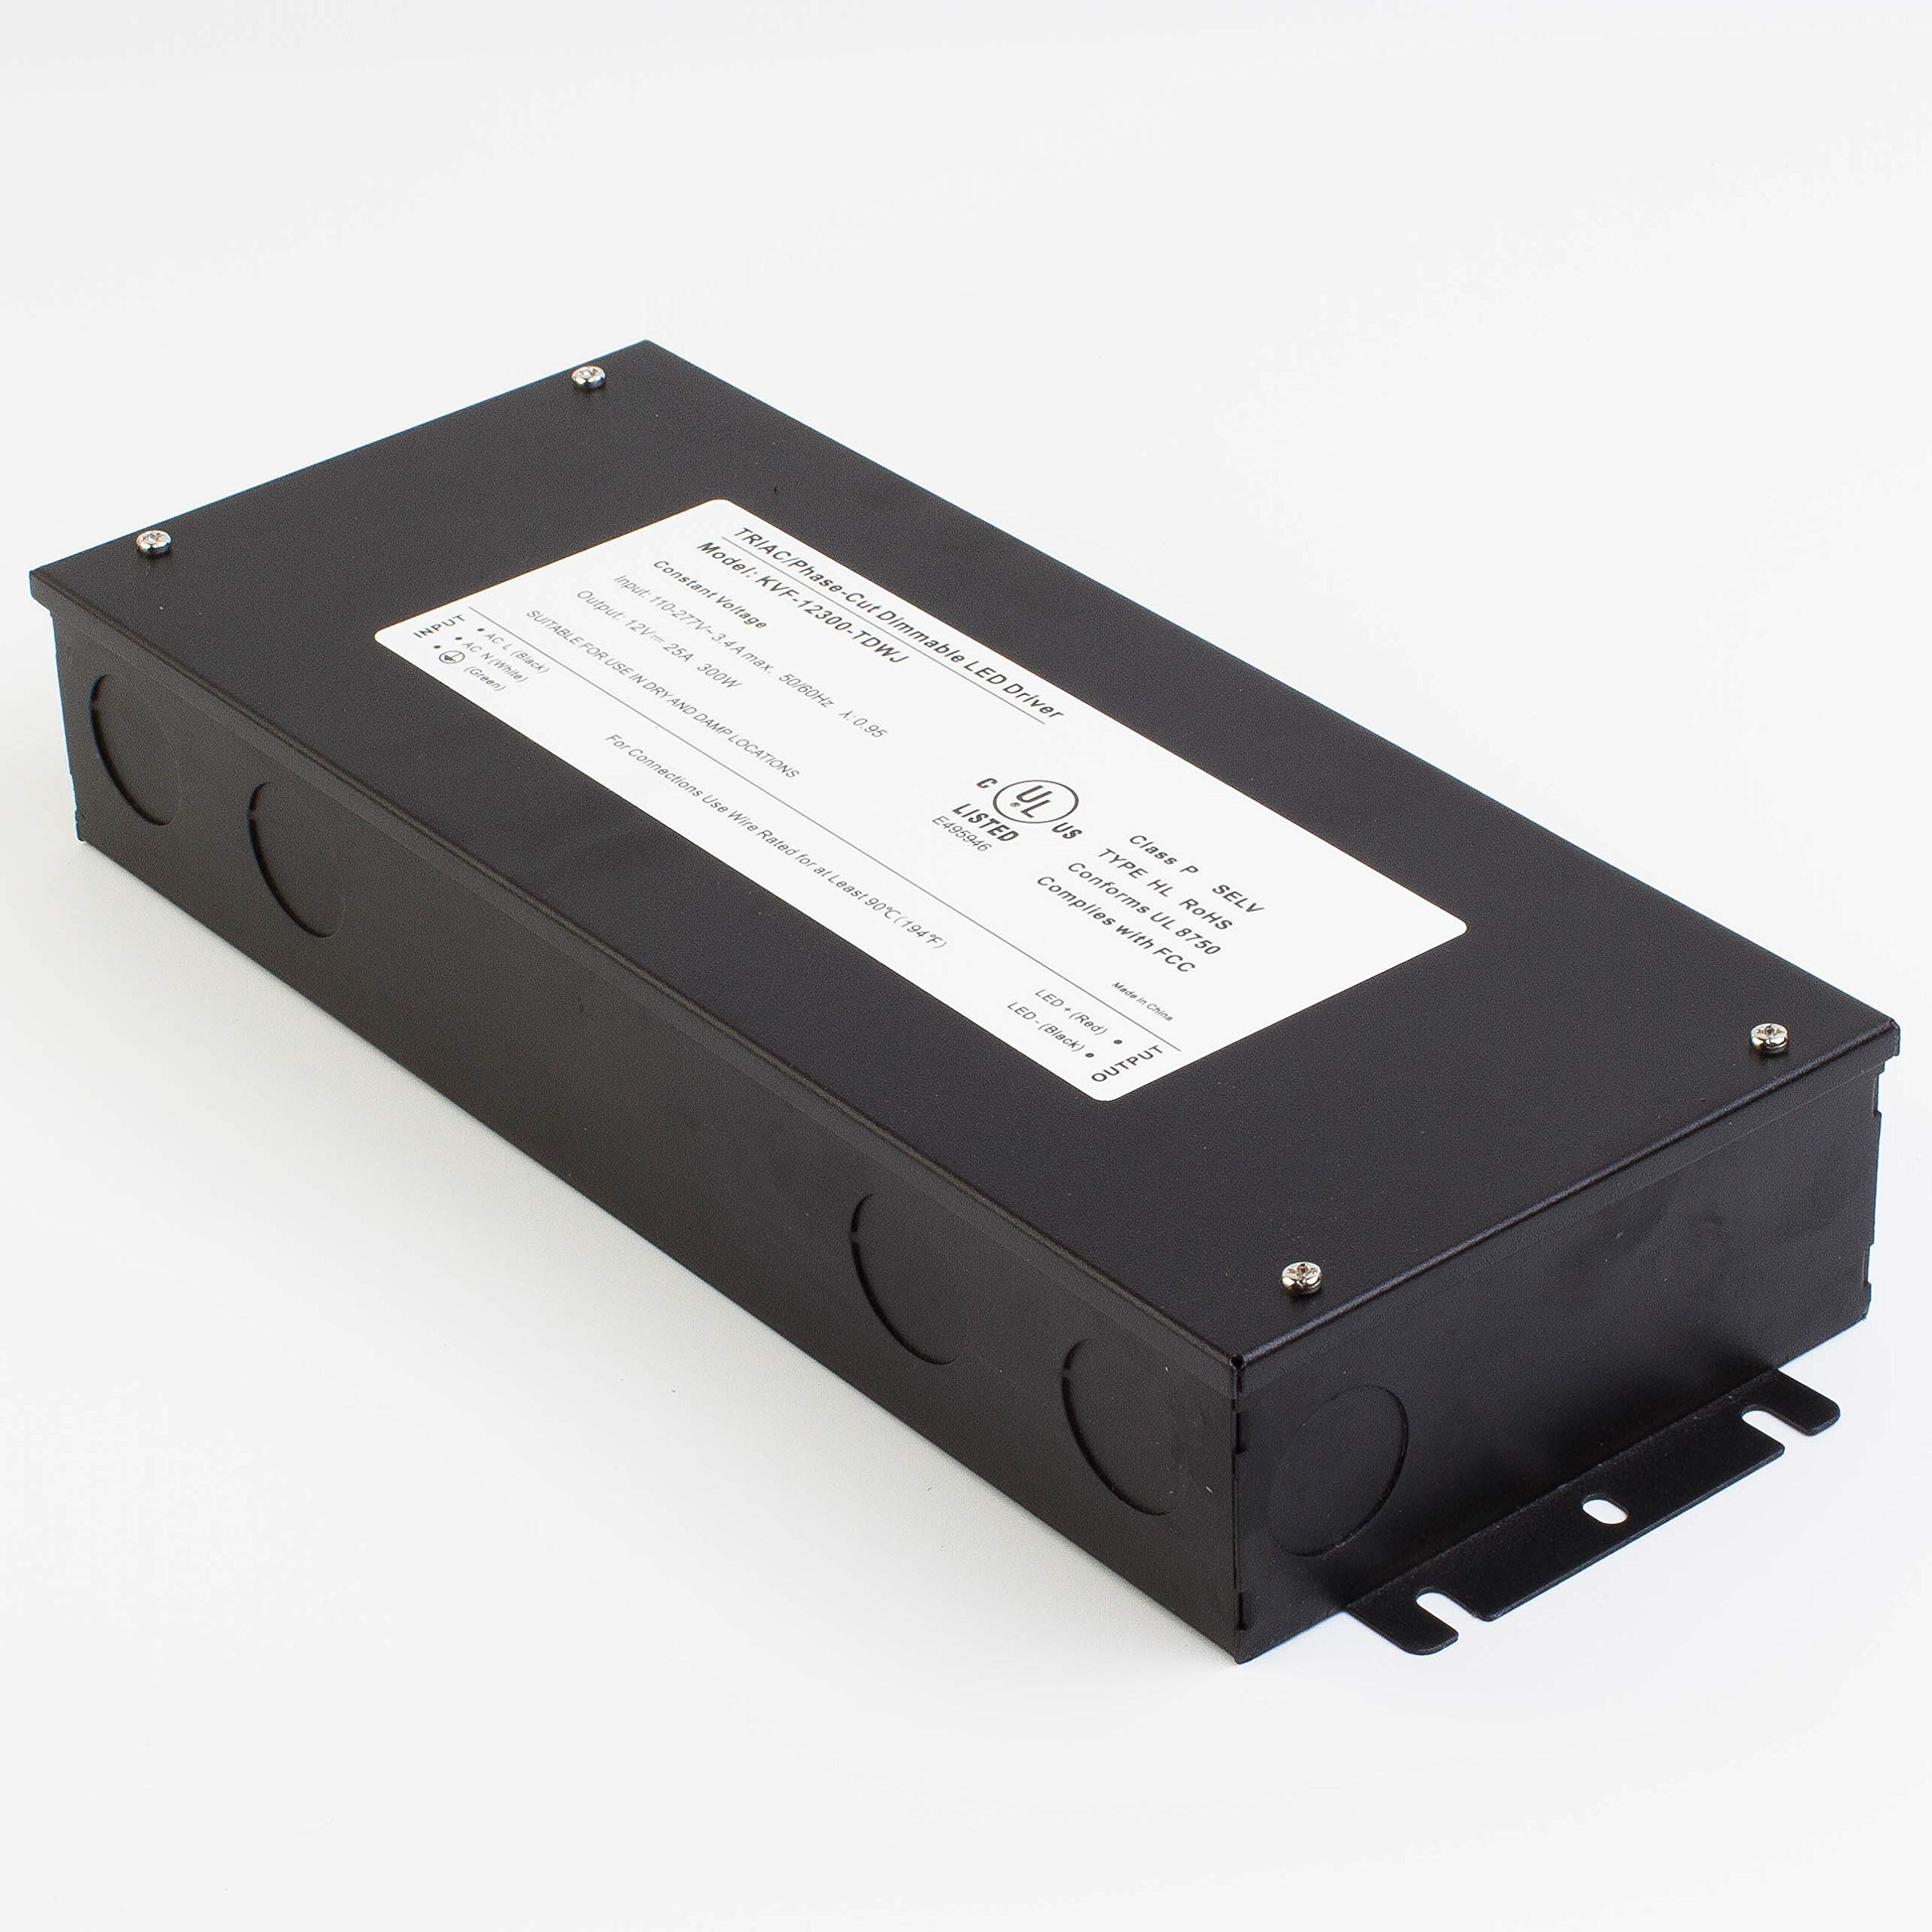 LEDupdates 12v UL Listed 300w Triac Dimmable Driver 100V - 277V AC Input Transformer Constant Voltage Power Supply for LED Strip light Control by AC Wall Dimmer (12v 300w) by LEDUPDATES (Image #5)